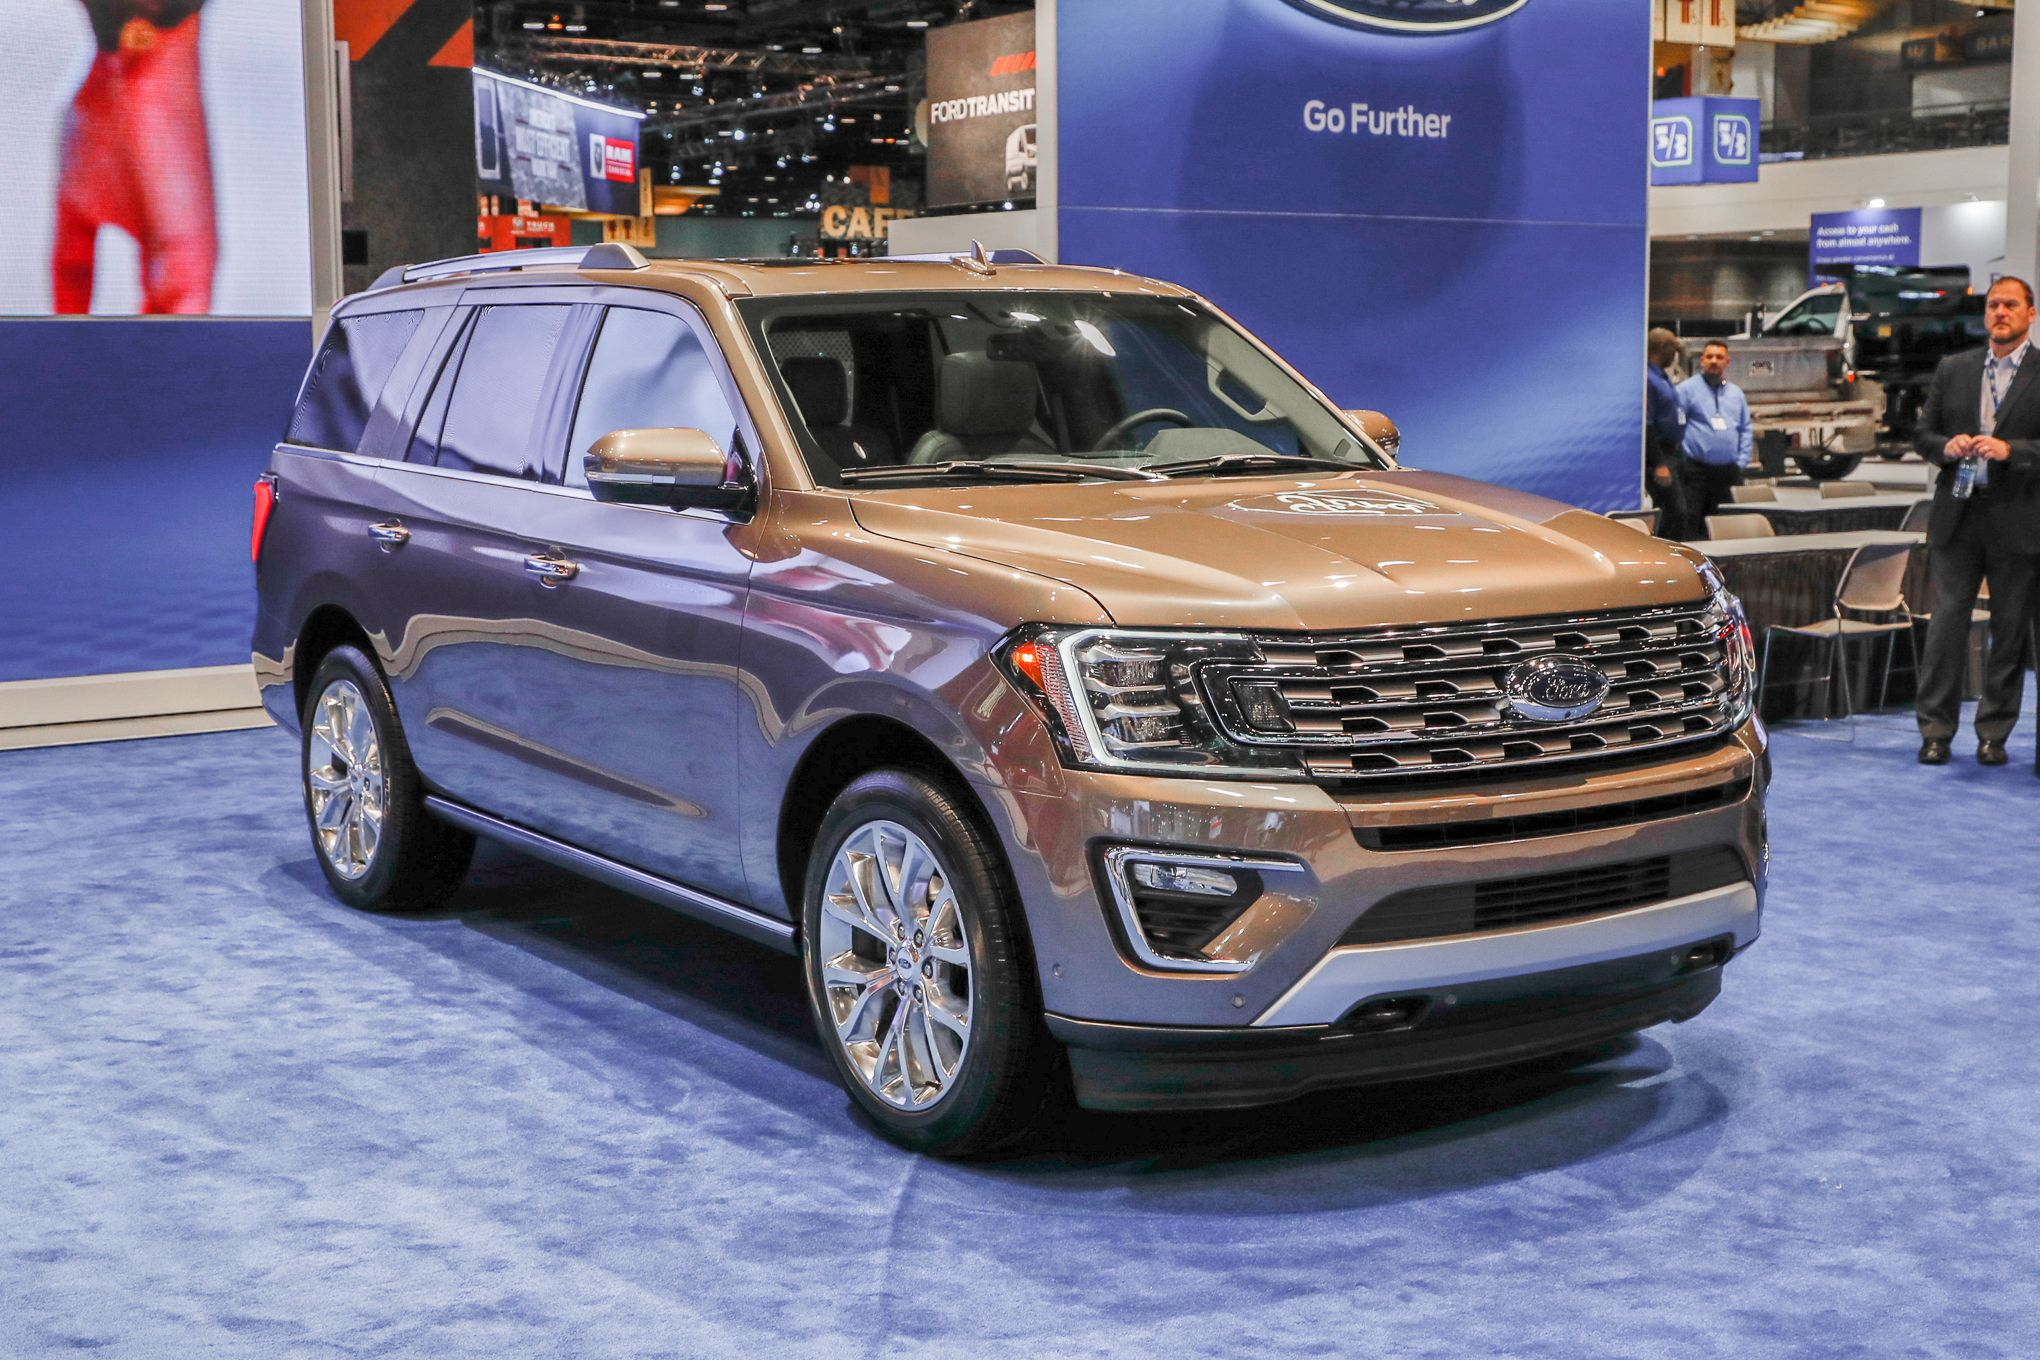 Top 10 Car Companies In The World 2018 Ford Expedition Ford And